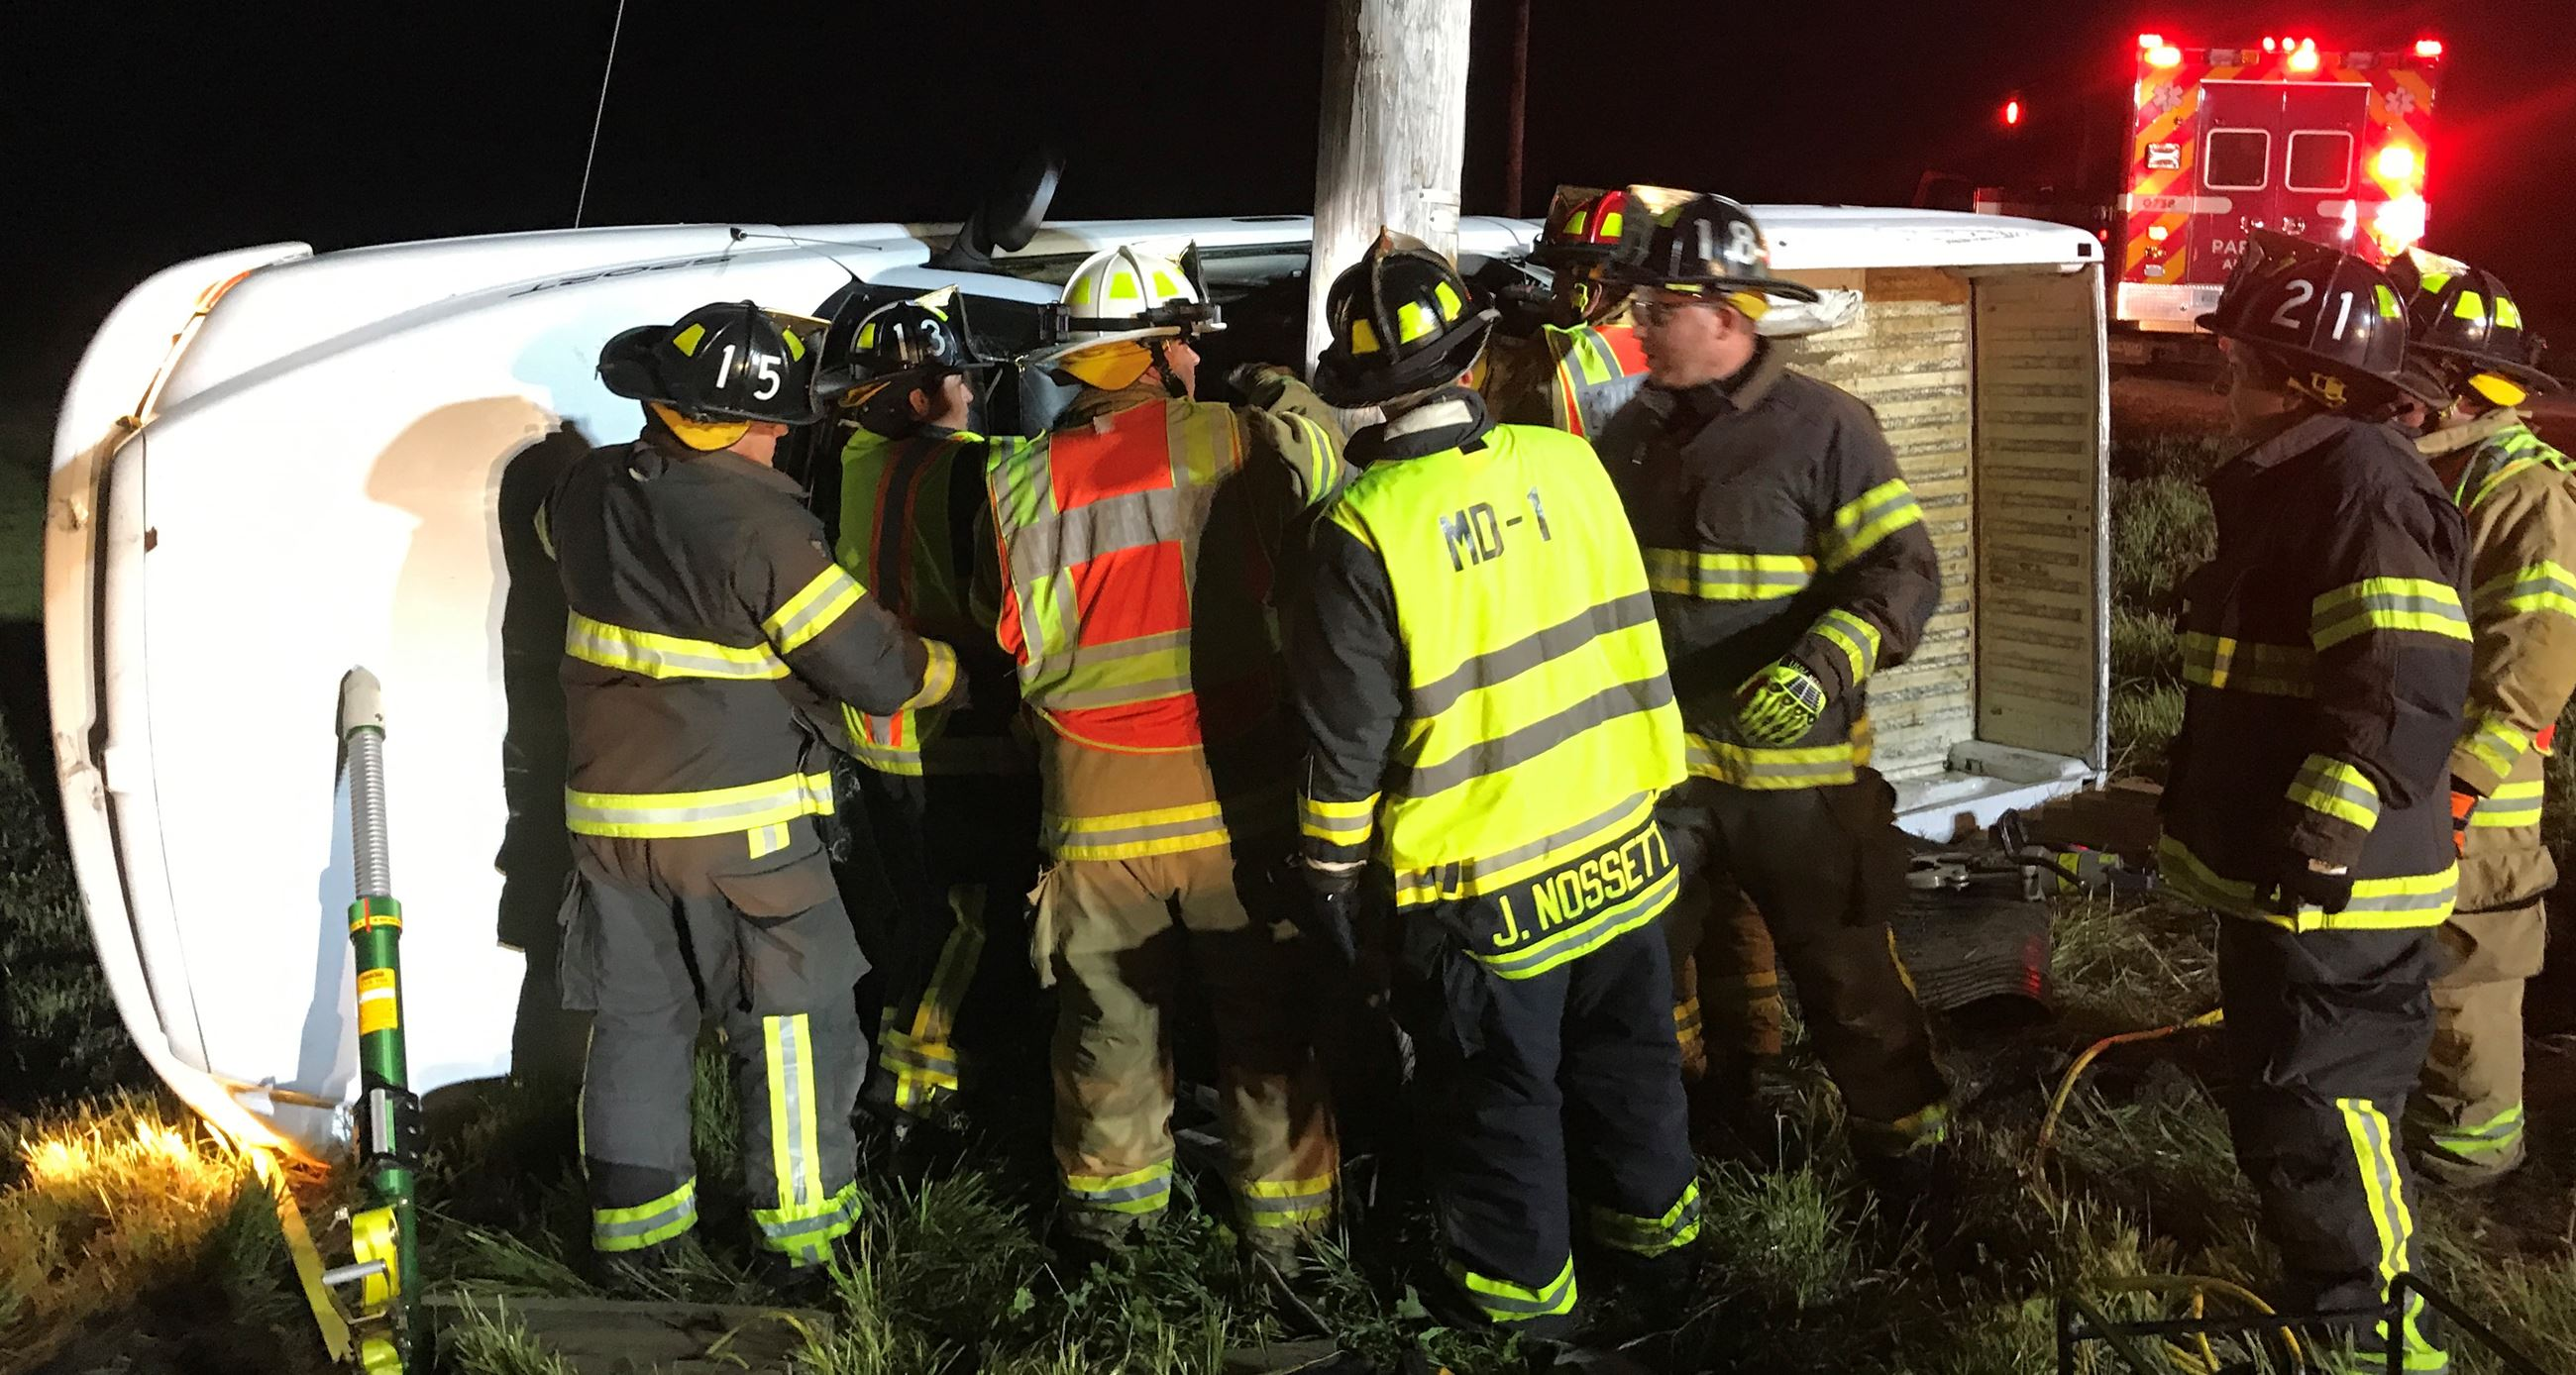 Doctor James Nossett assists Volunteer Firefighters with extrication at personal injury accident